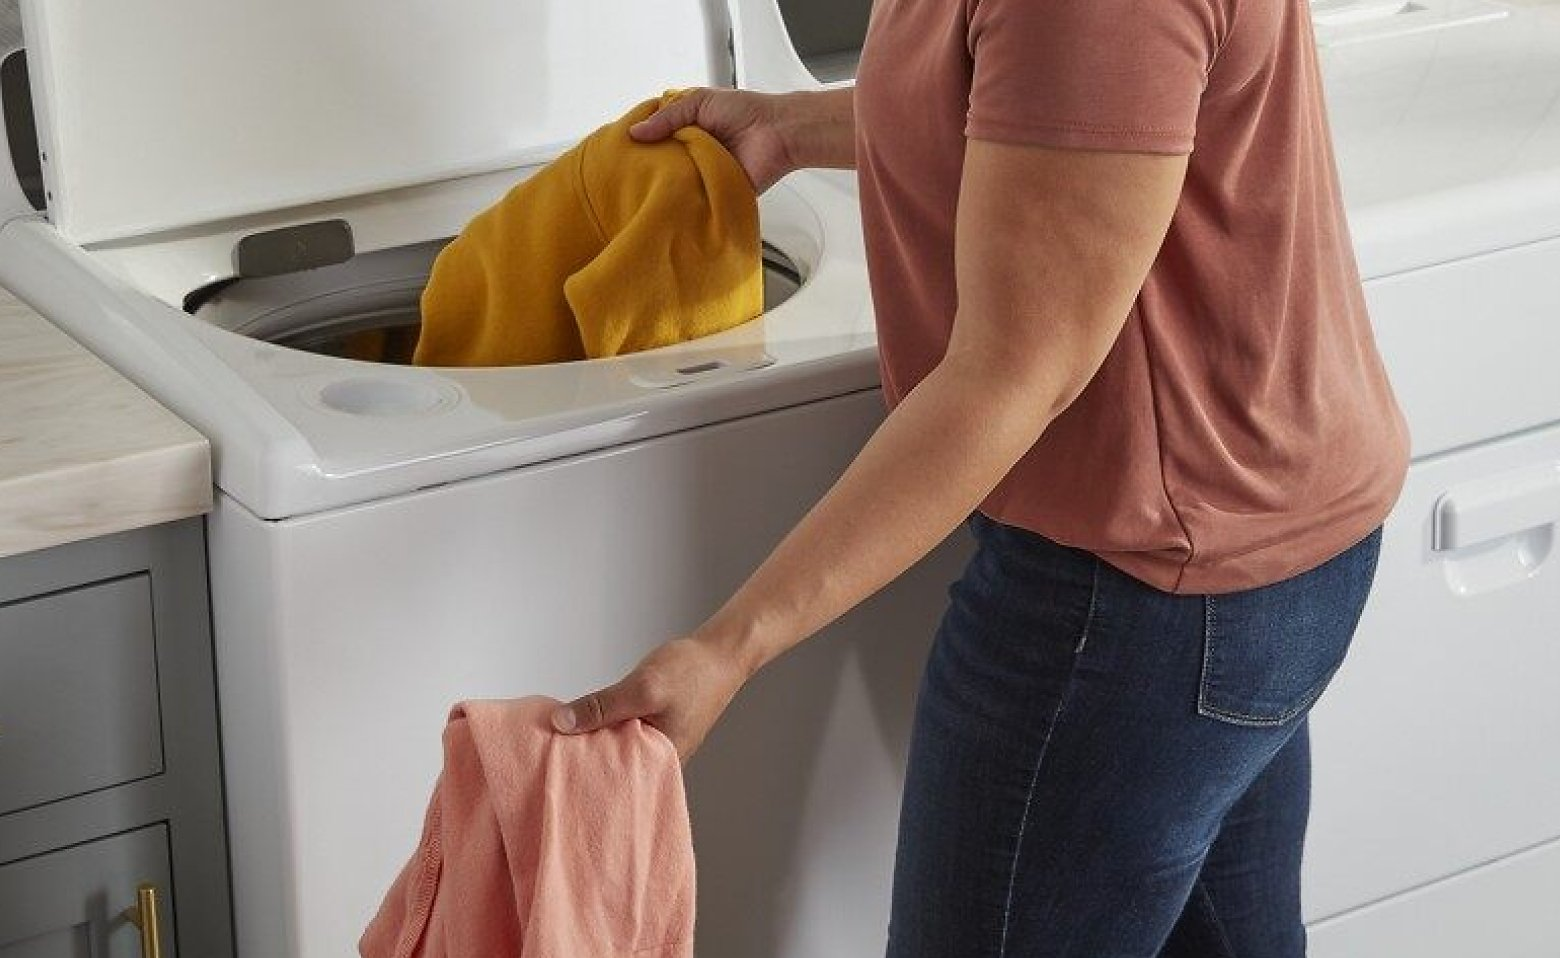 Person loading a washing machine with laundry